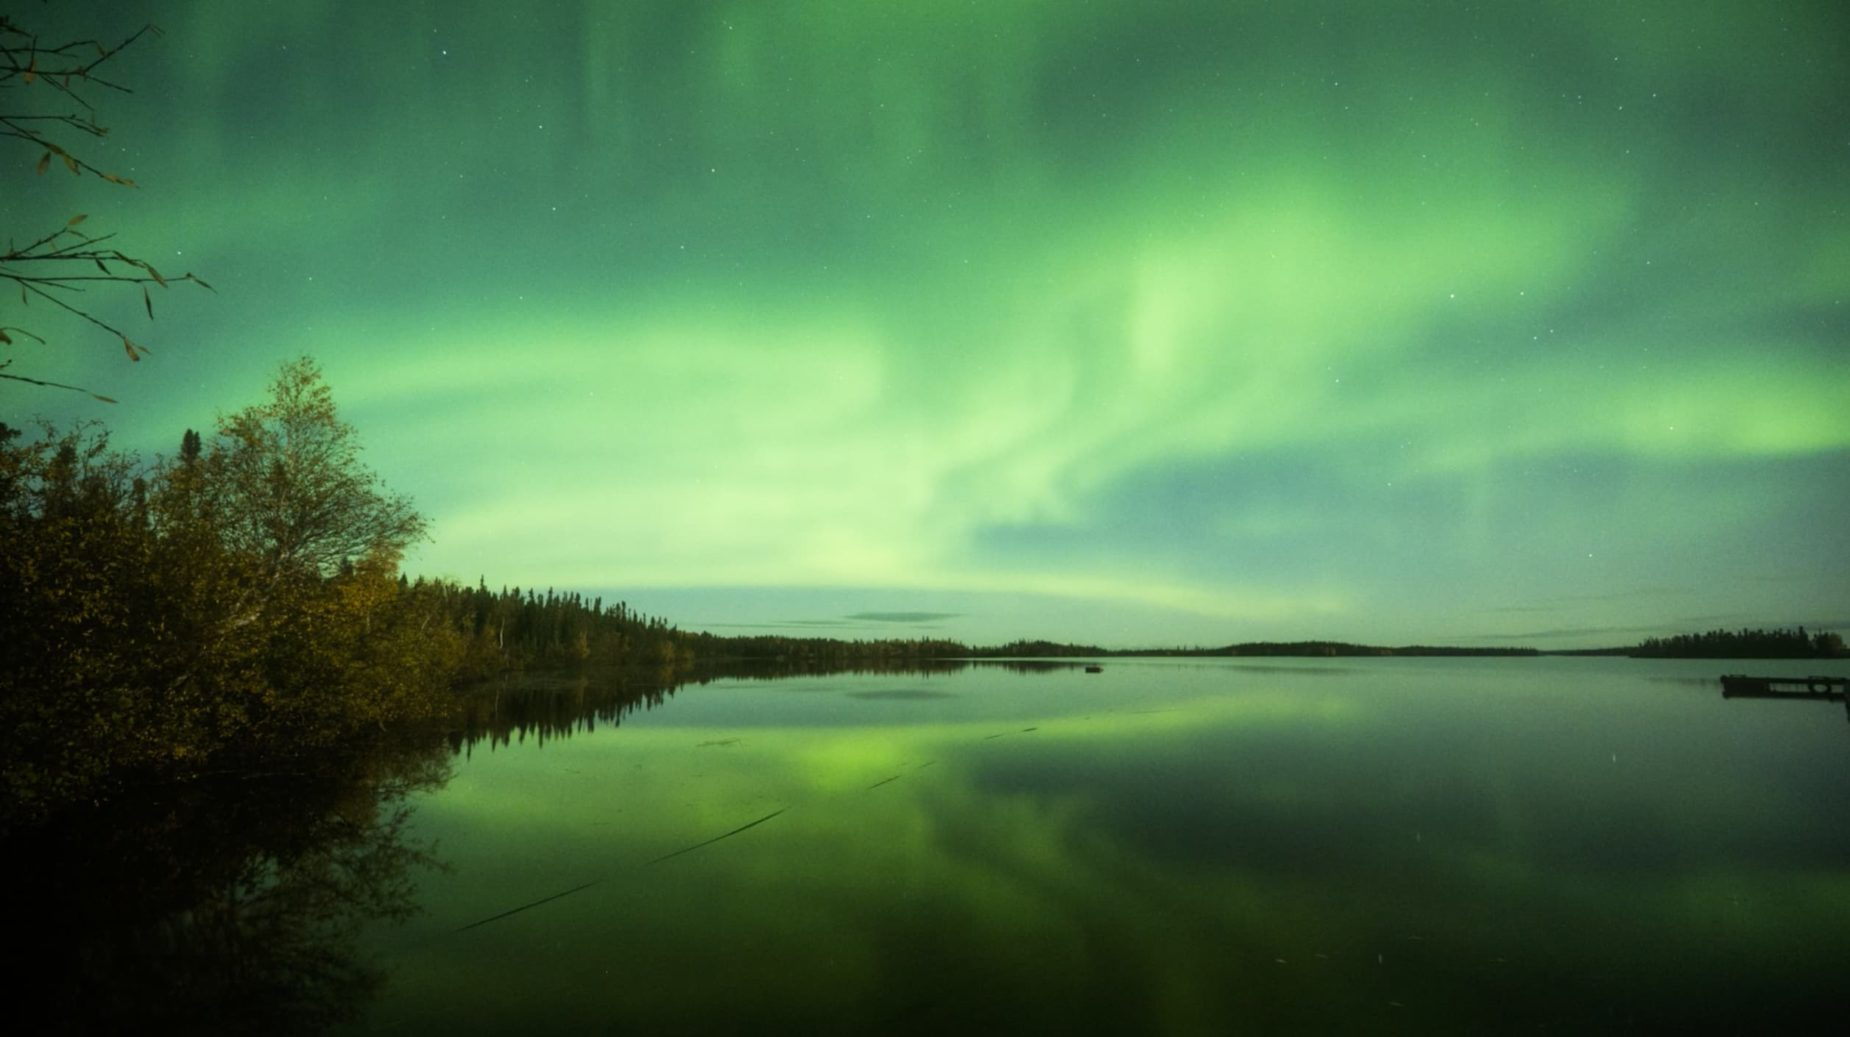 Image of green skies from the Northern Lights reflecting in the lake